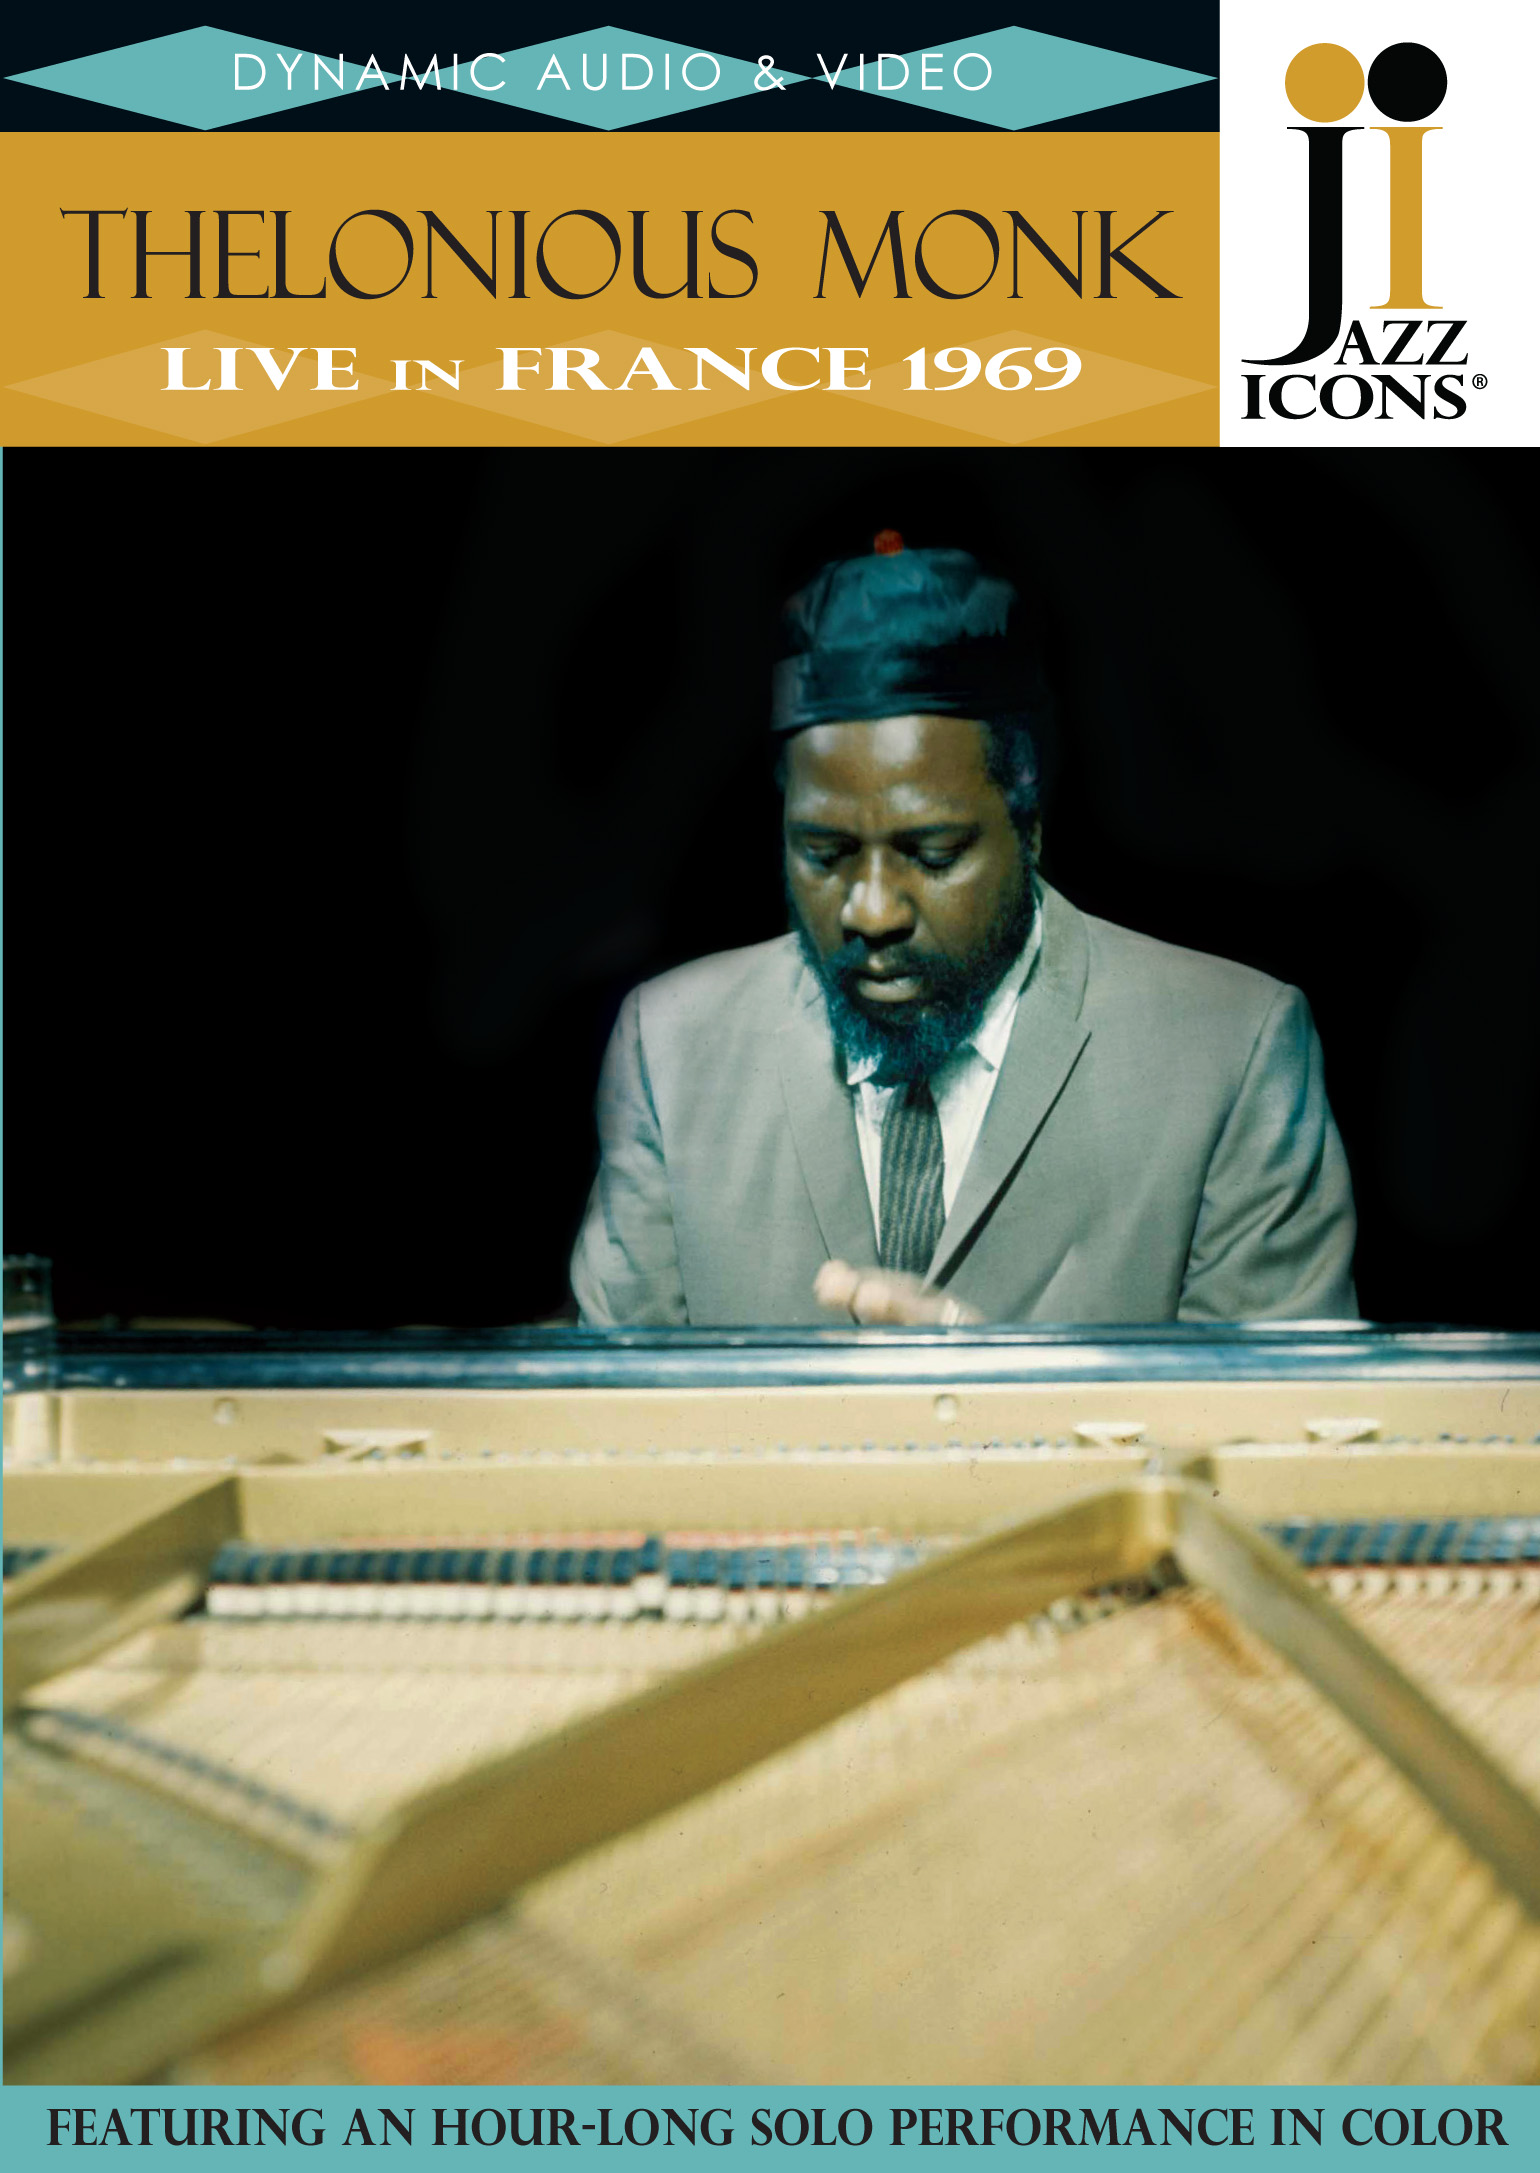 Jazz Icons: Thelonius Monk - Live in France 1969